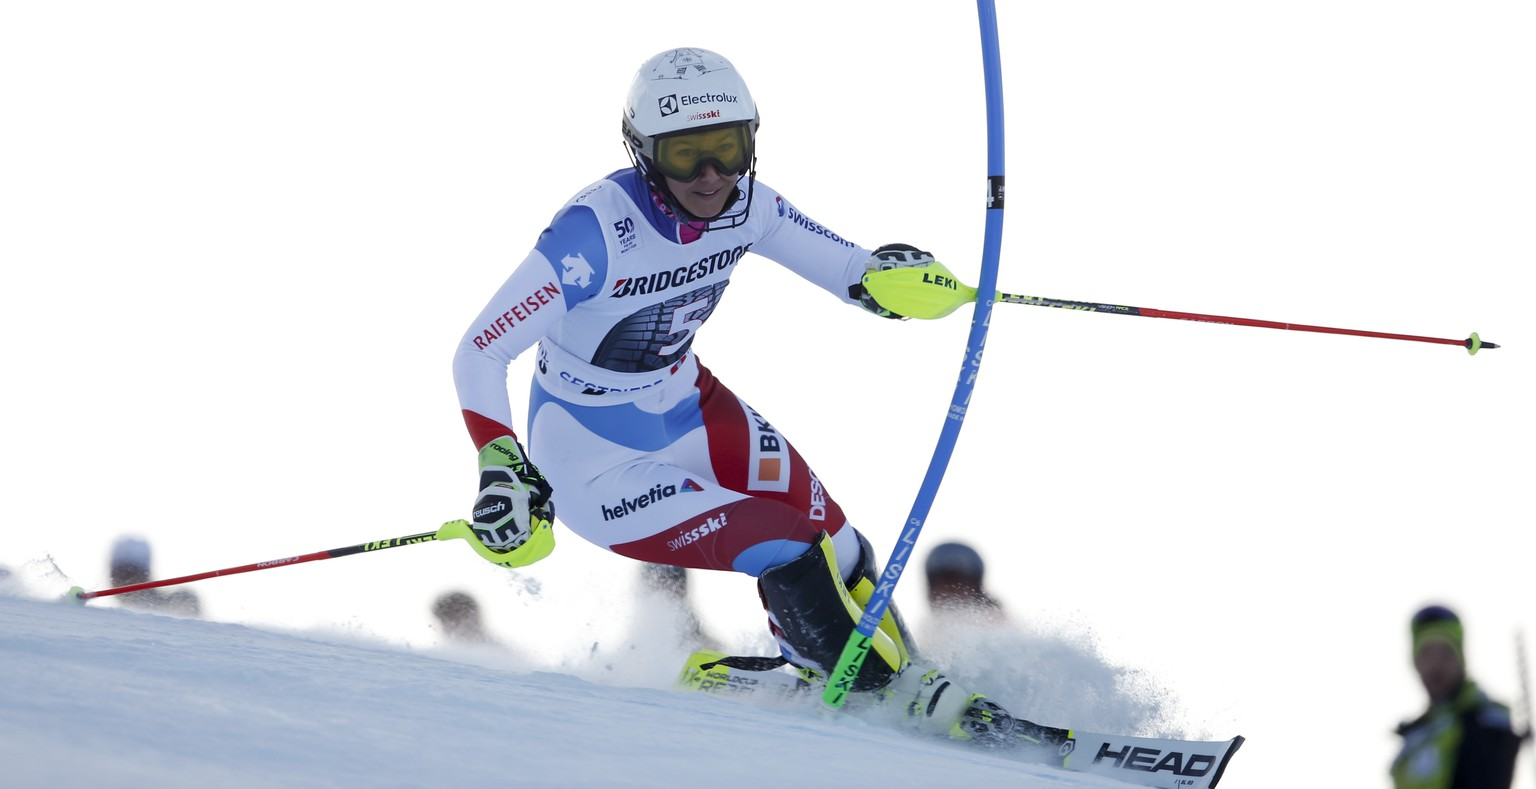 Switzerland's Wendy Holdener competes during an alpine ski, women's World Cup slalom, in Sestriere, Italy, Sunday, Dec. 11, 2016. (AP Photo/Marco Trovati)